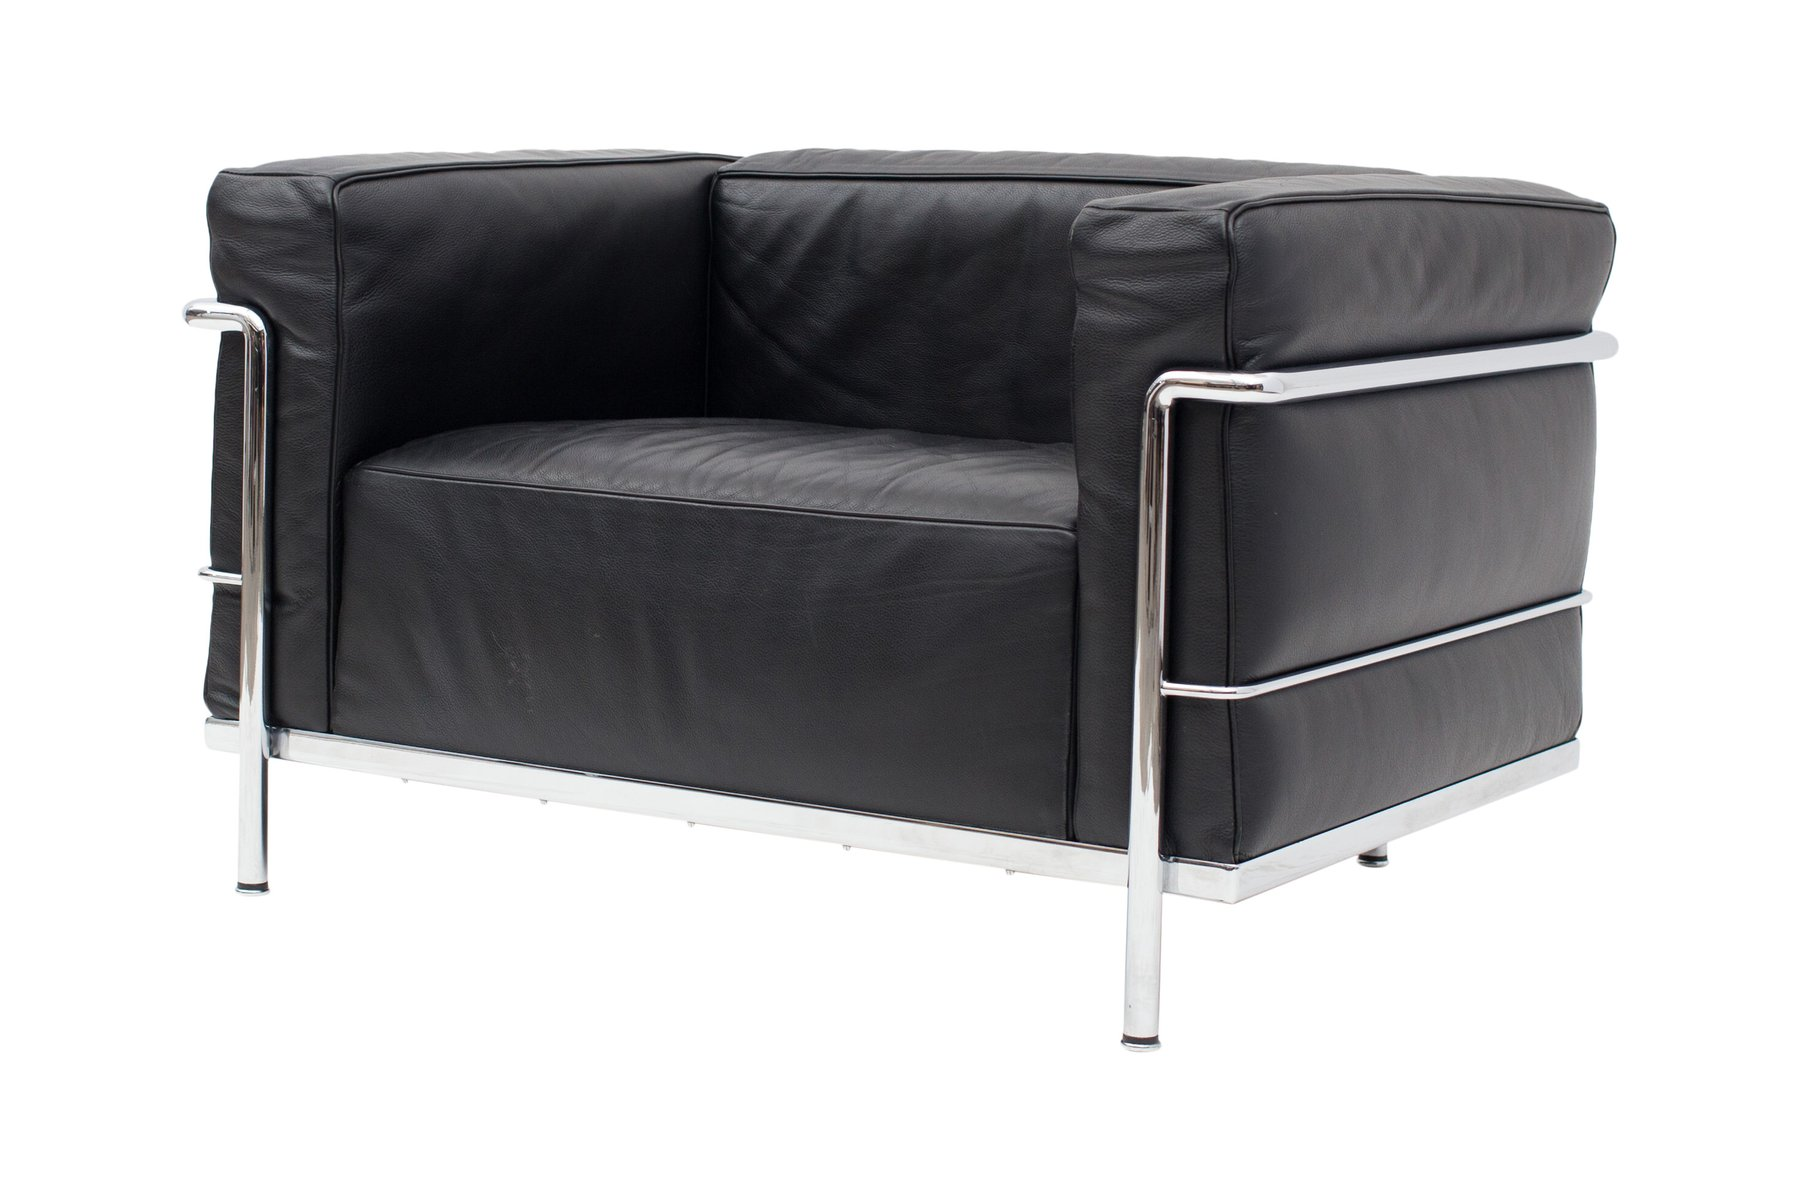 LC3 Black Poltrona Lounge Chairs from Le Corbusier for Cassina ...